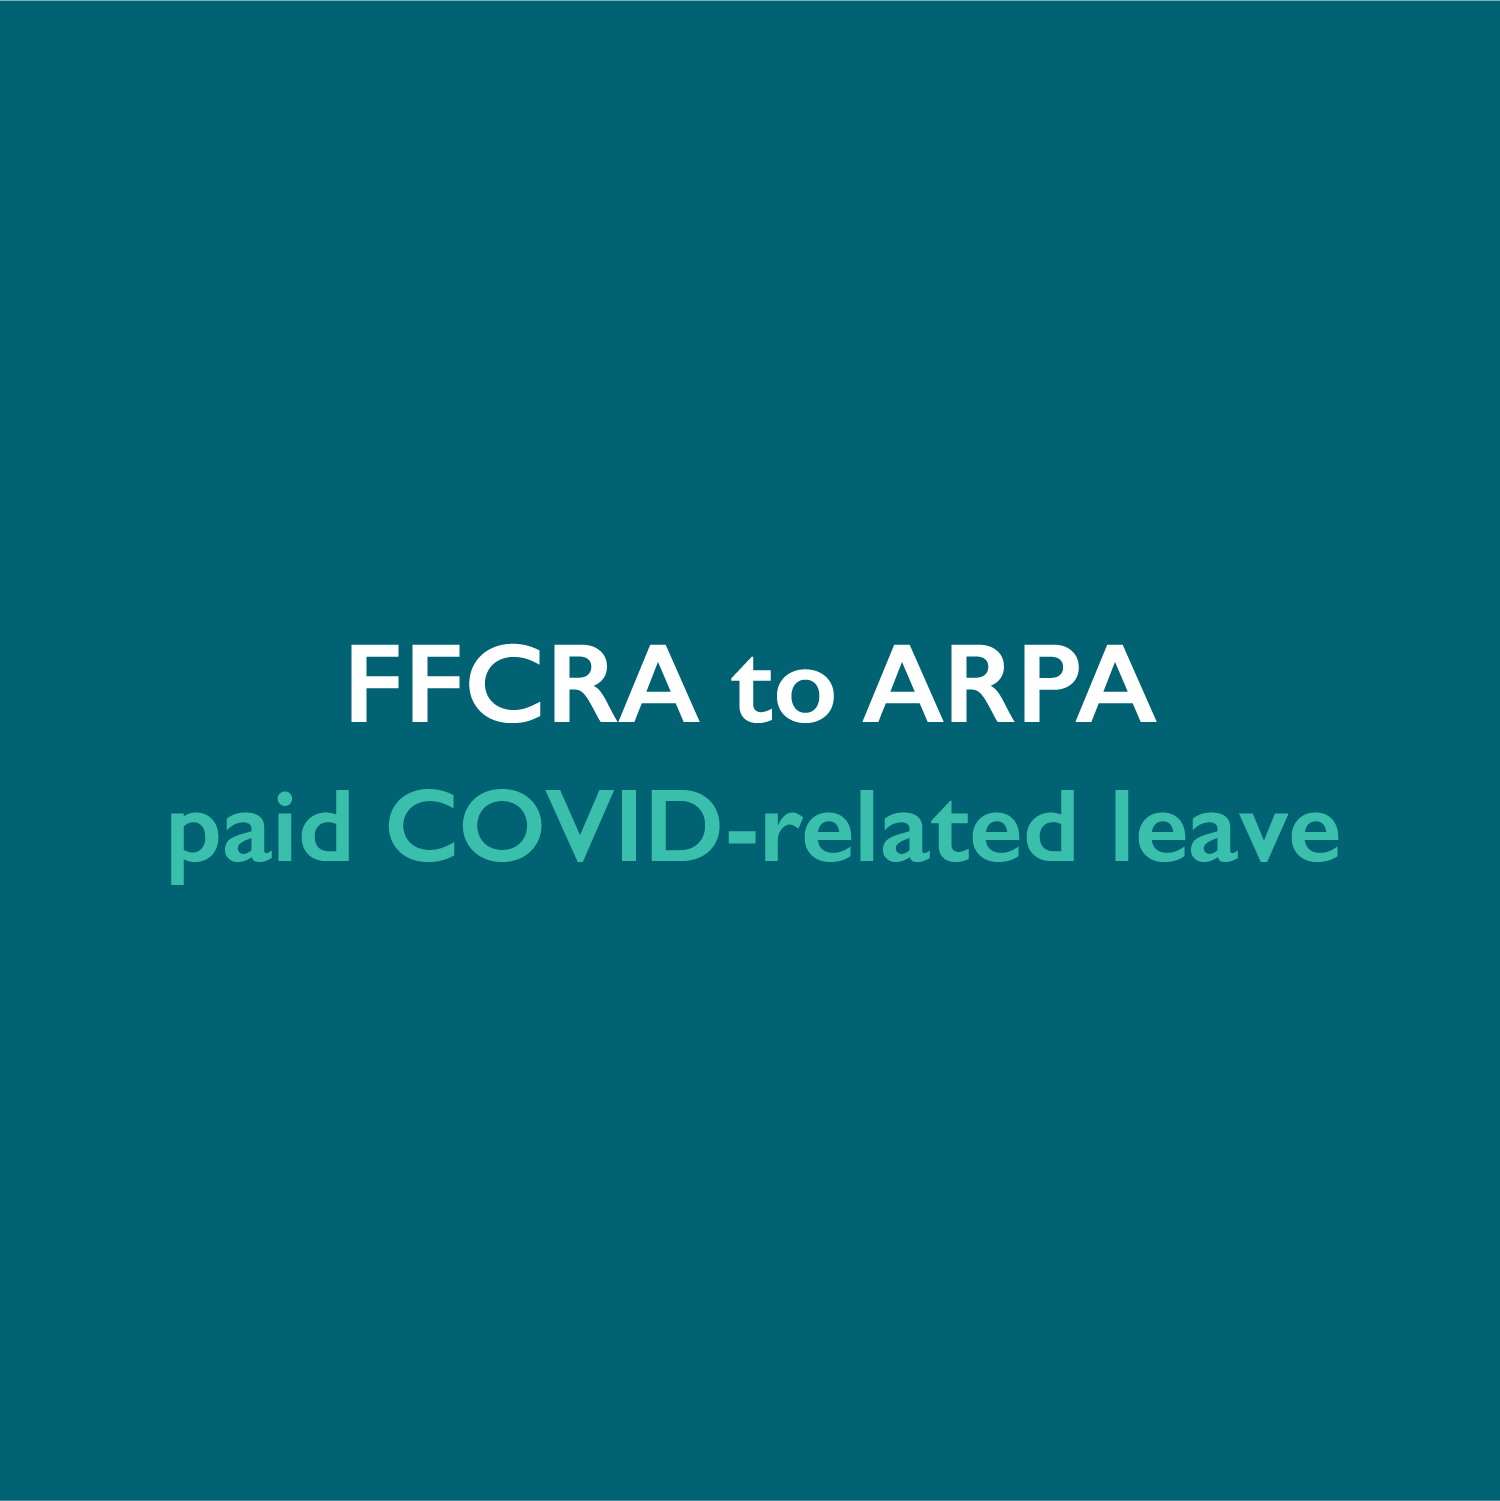 From FFCRA to ARPA: the latest on paid COVID-related leave